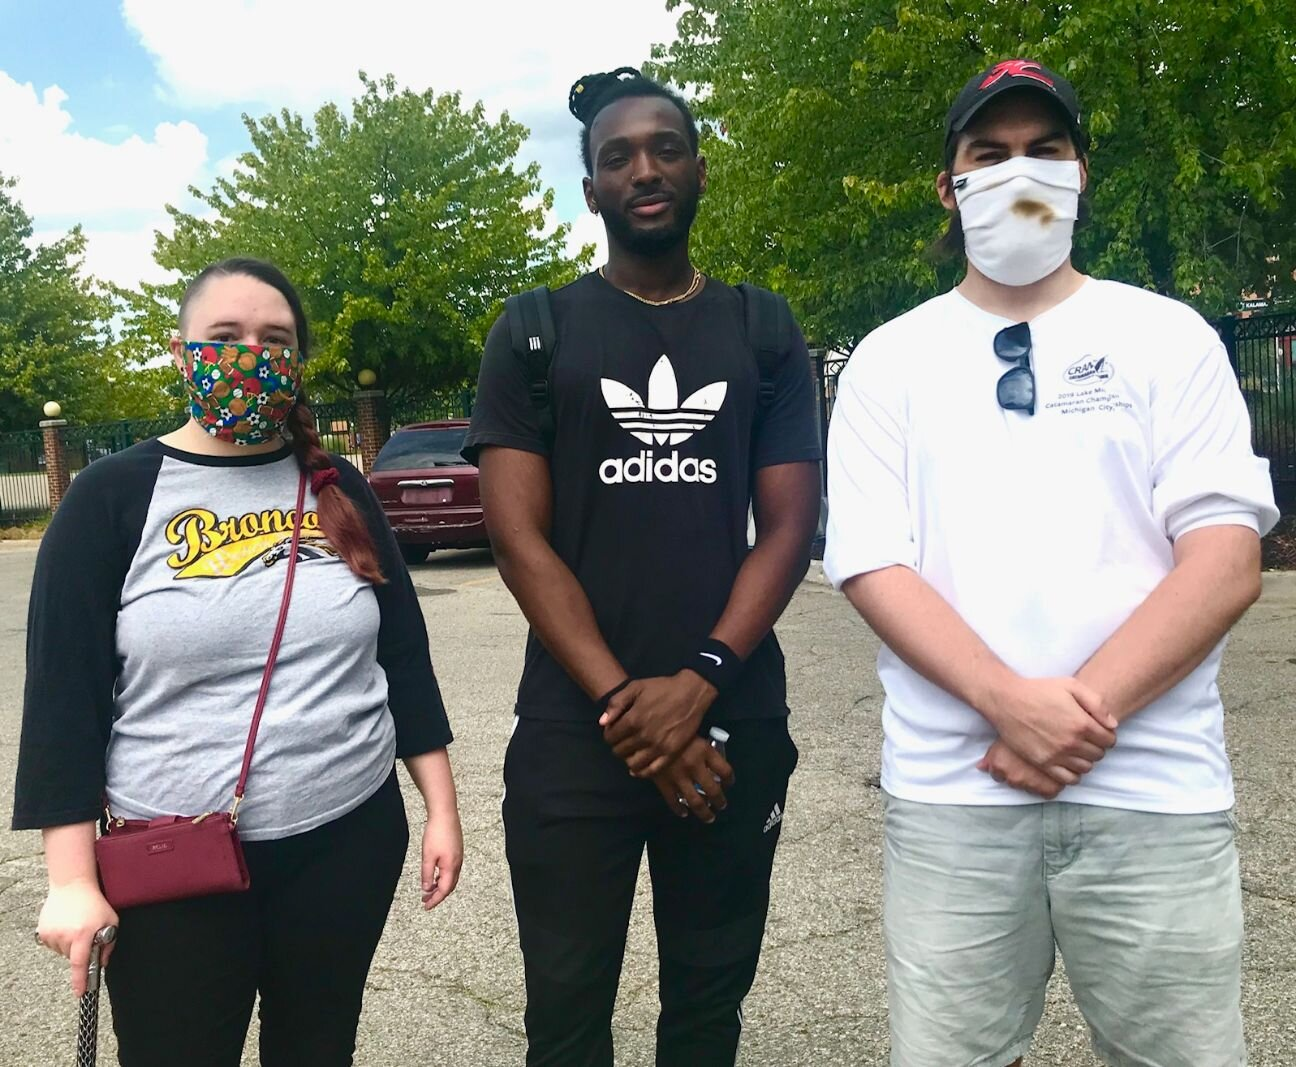 From left are counter-protesters Brianna Mull, Winston Ssessanga and Chad Lenczycki, all of Kalamazoo.